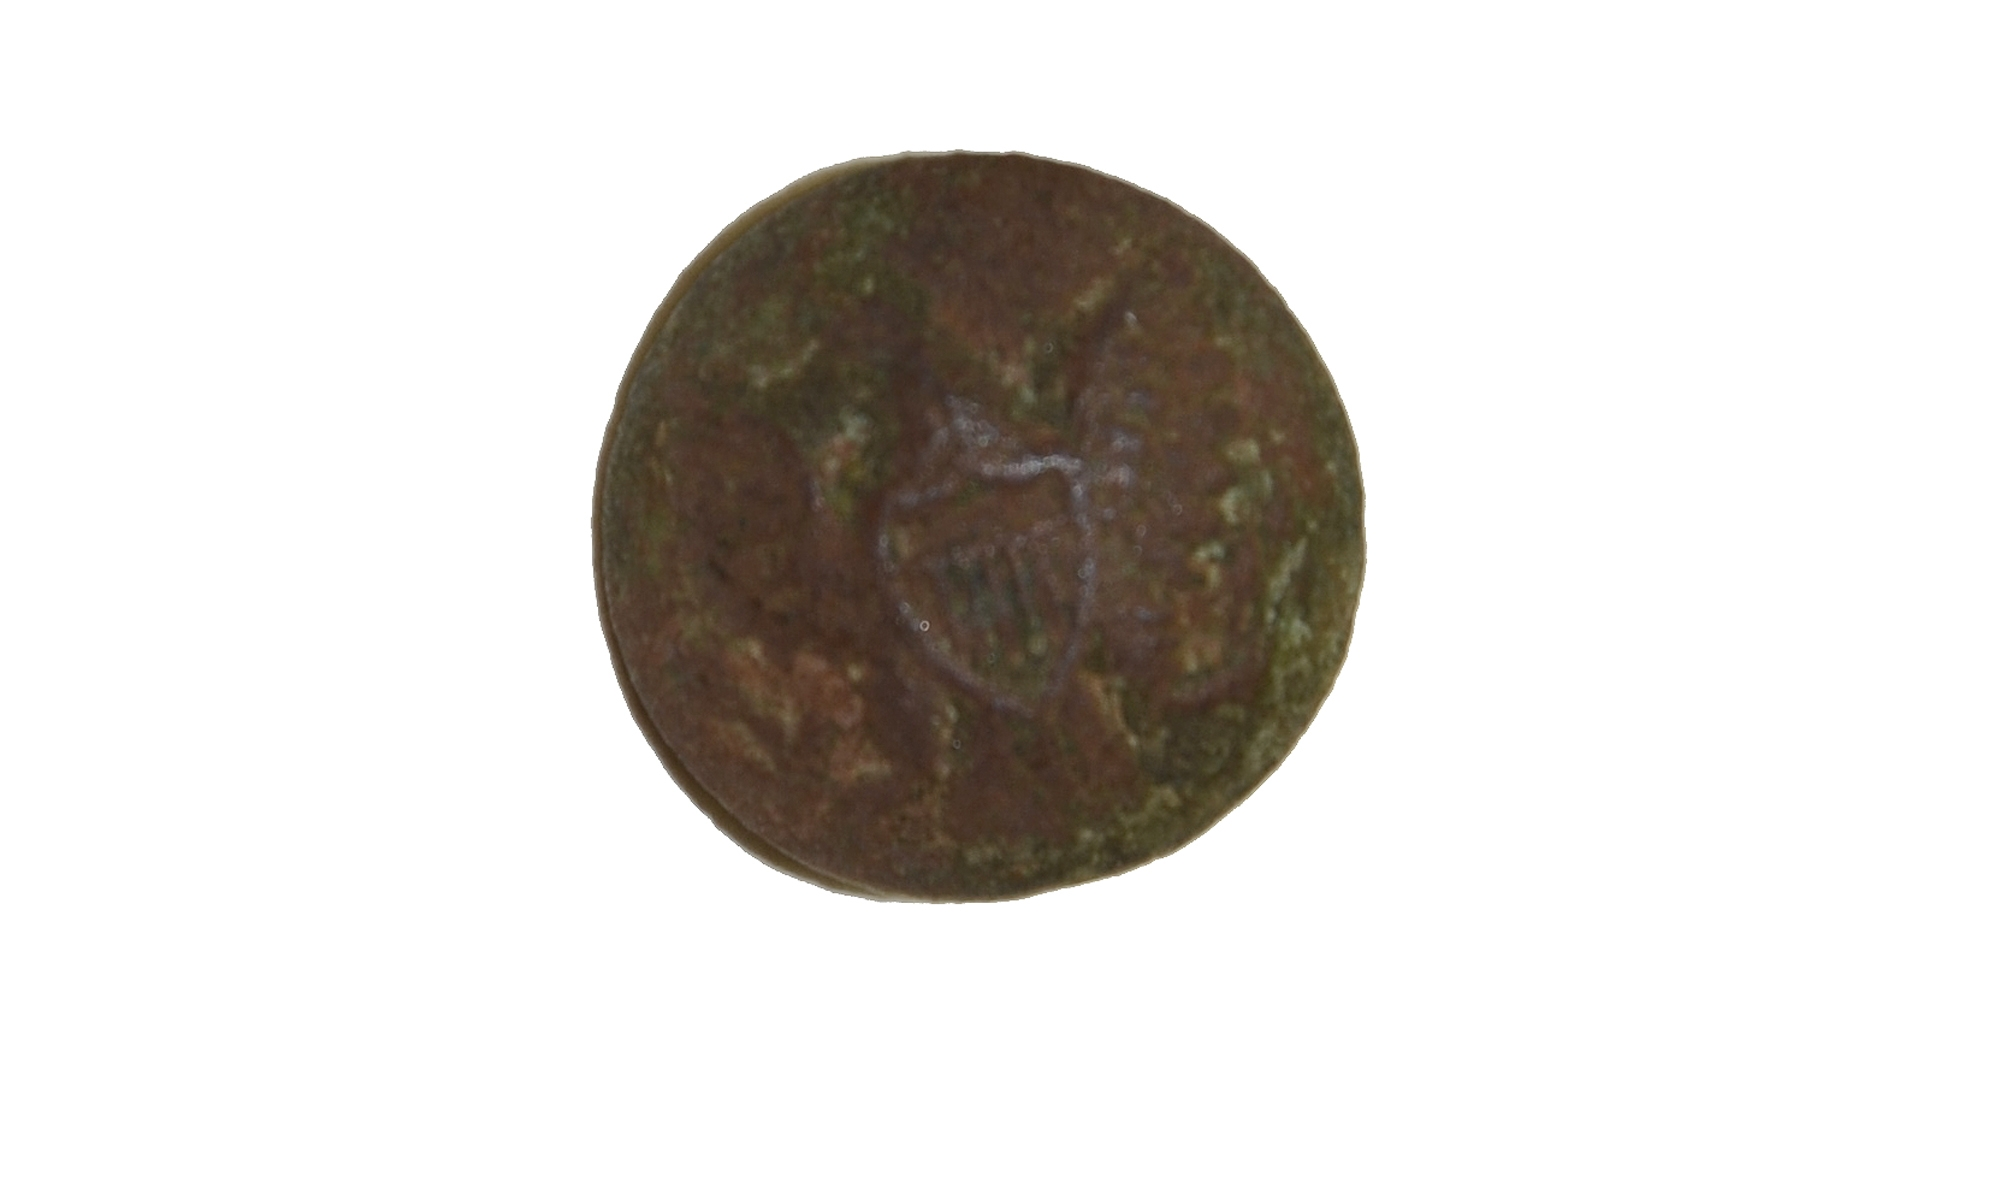 US ENLISTEDMAN'S CUFF BUTTON RECOVERED AT GETTYSBURG